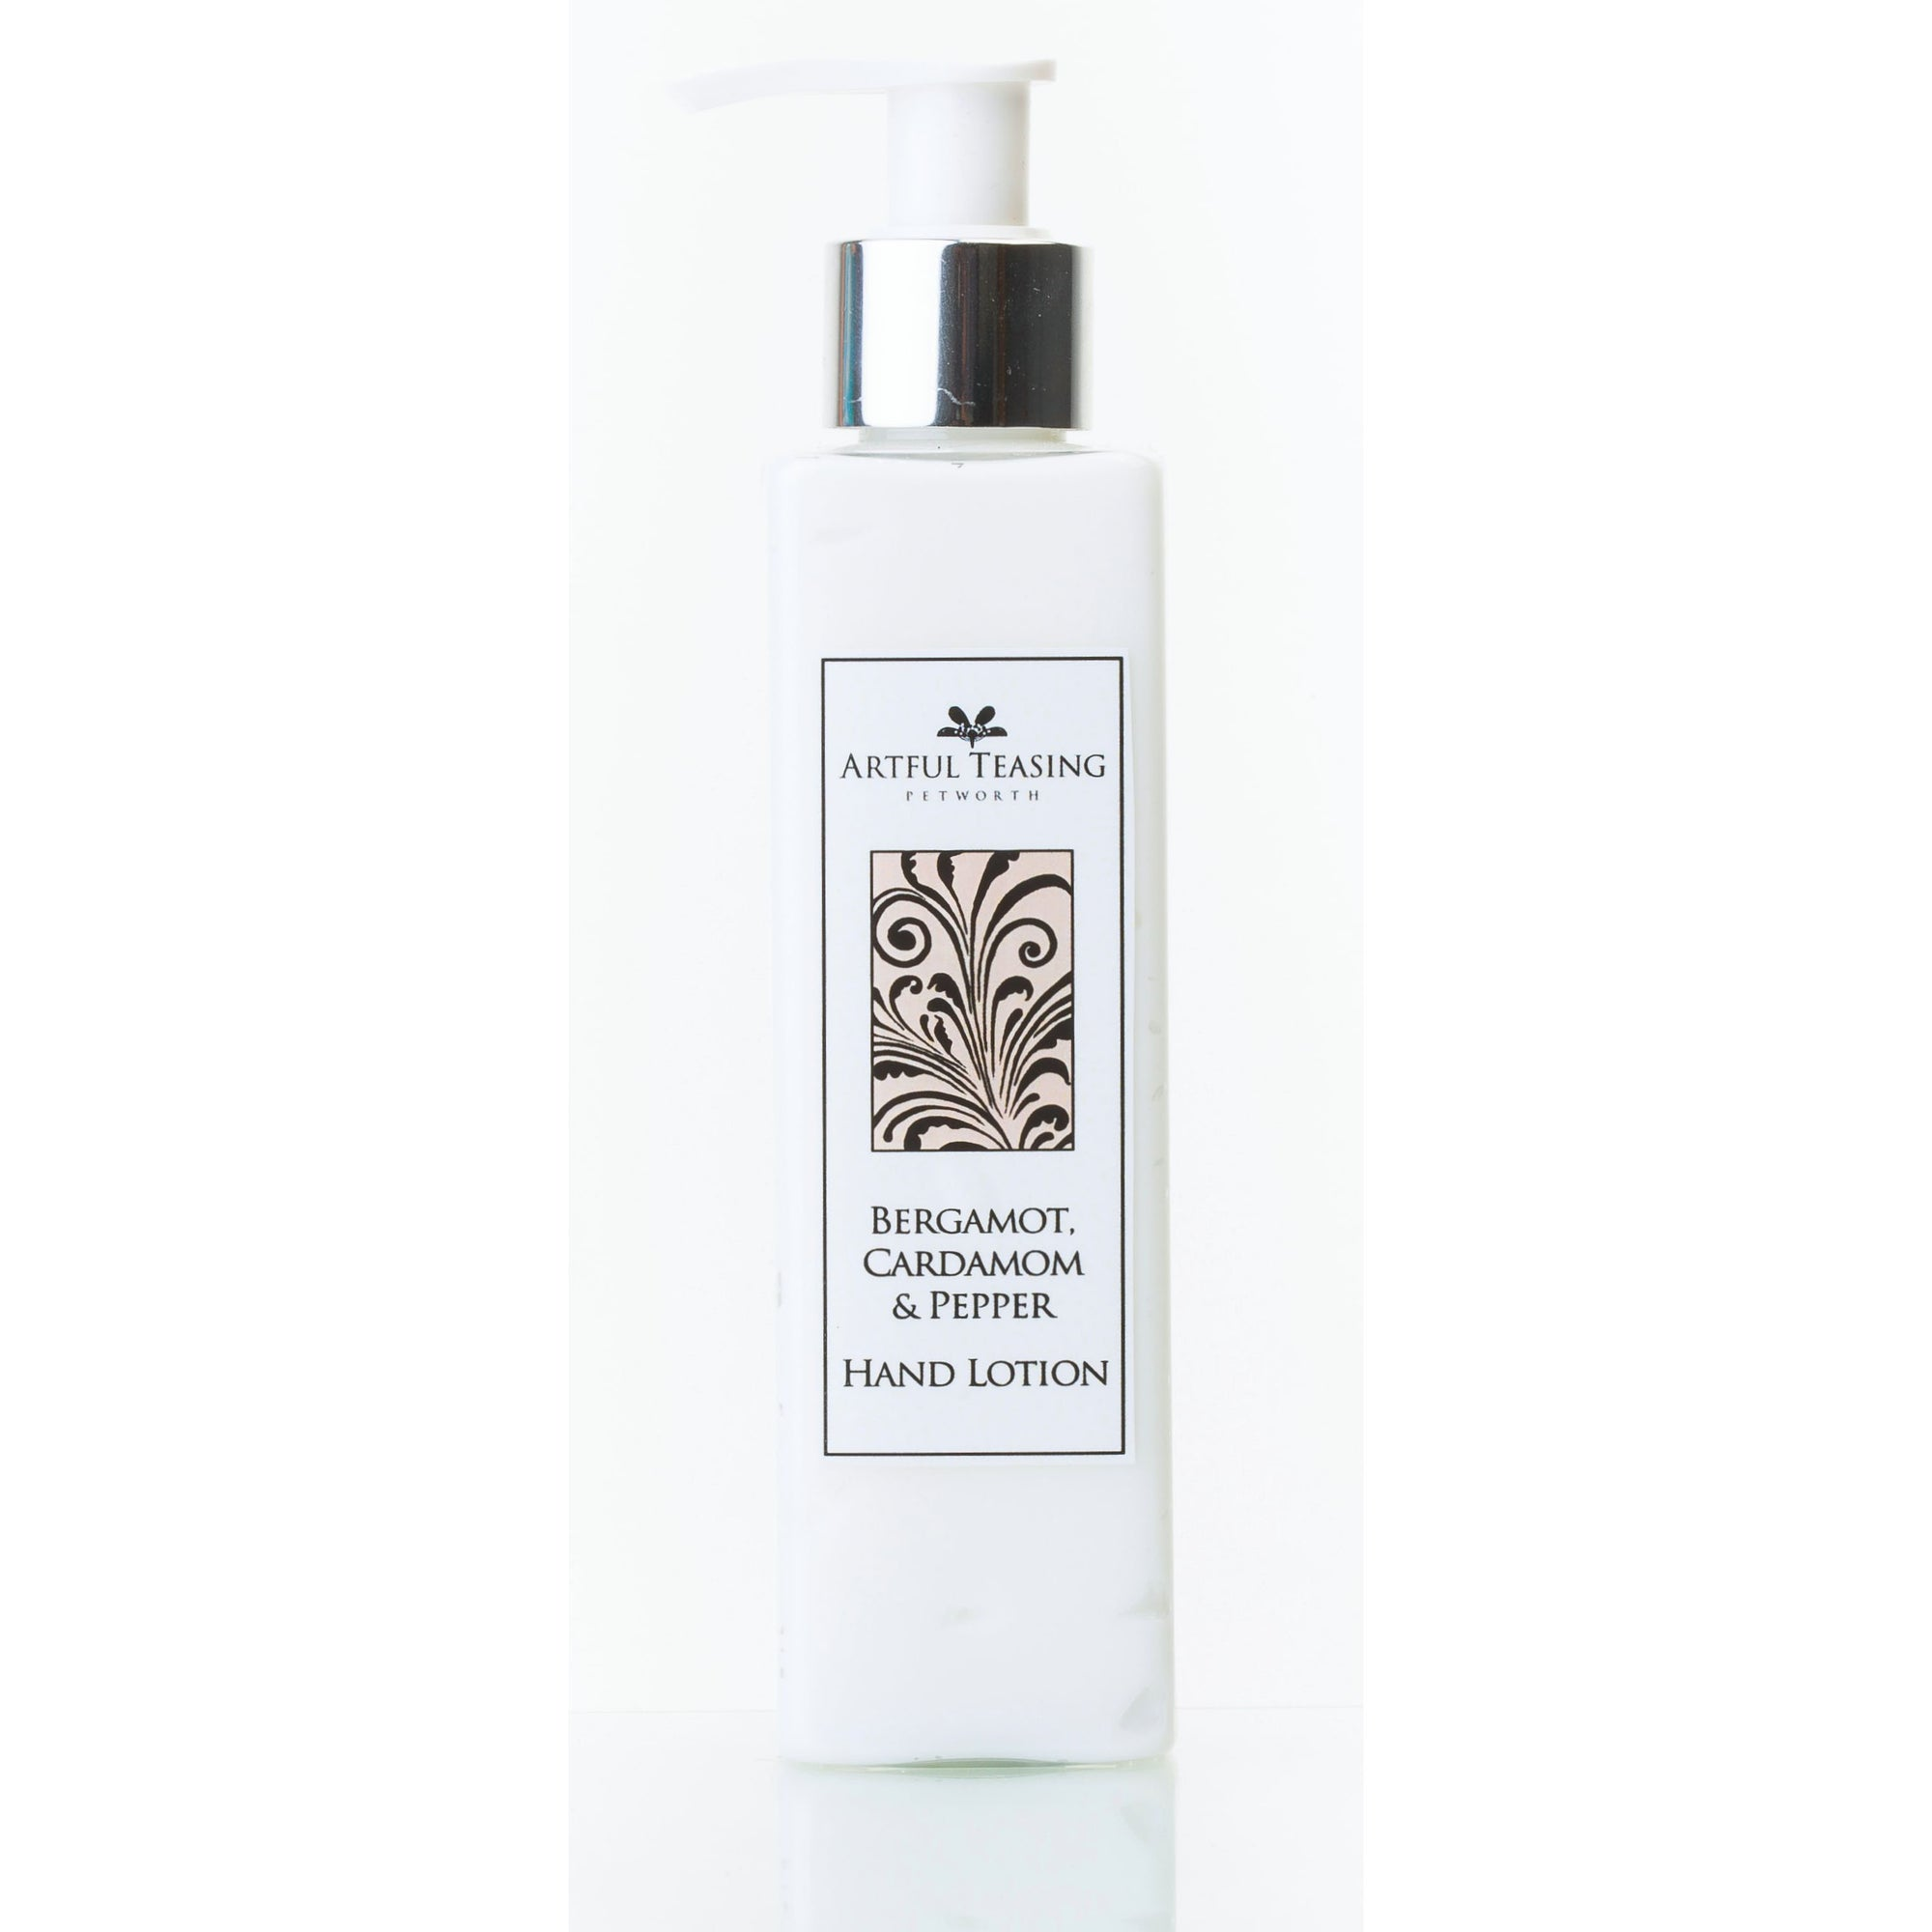 Bergamot, Cardamom & Pepper Hand Lotion 200ml